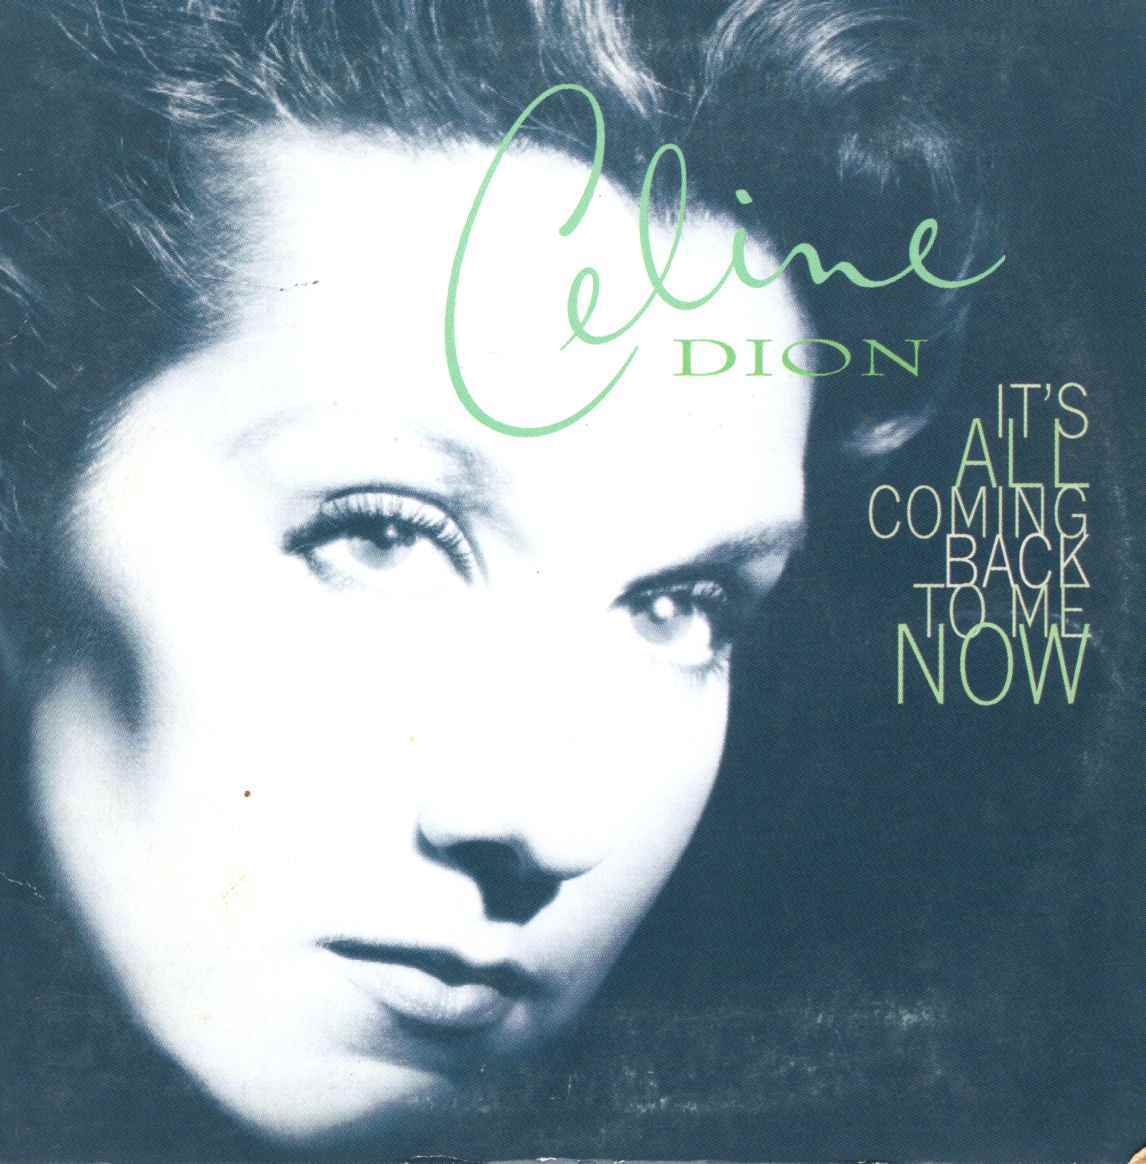 Céline Dion It S All Coming Back To Me Now Video 1996 Imdb